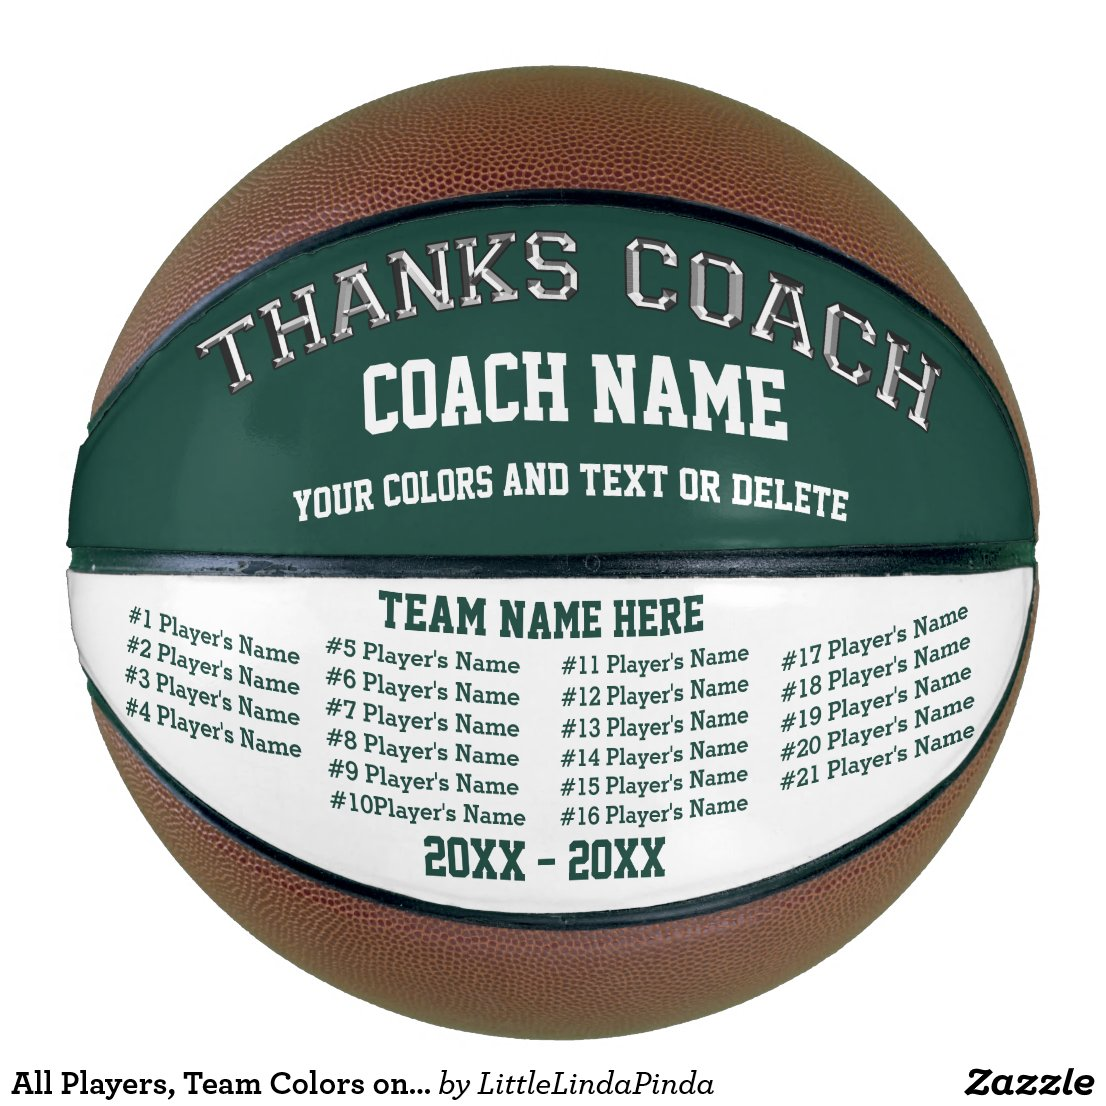 All Players, Team Colors on Basketball Coach Gifts